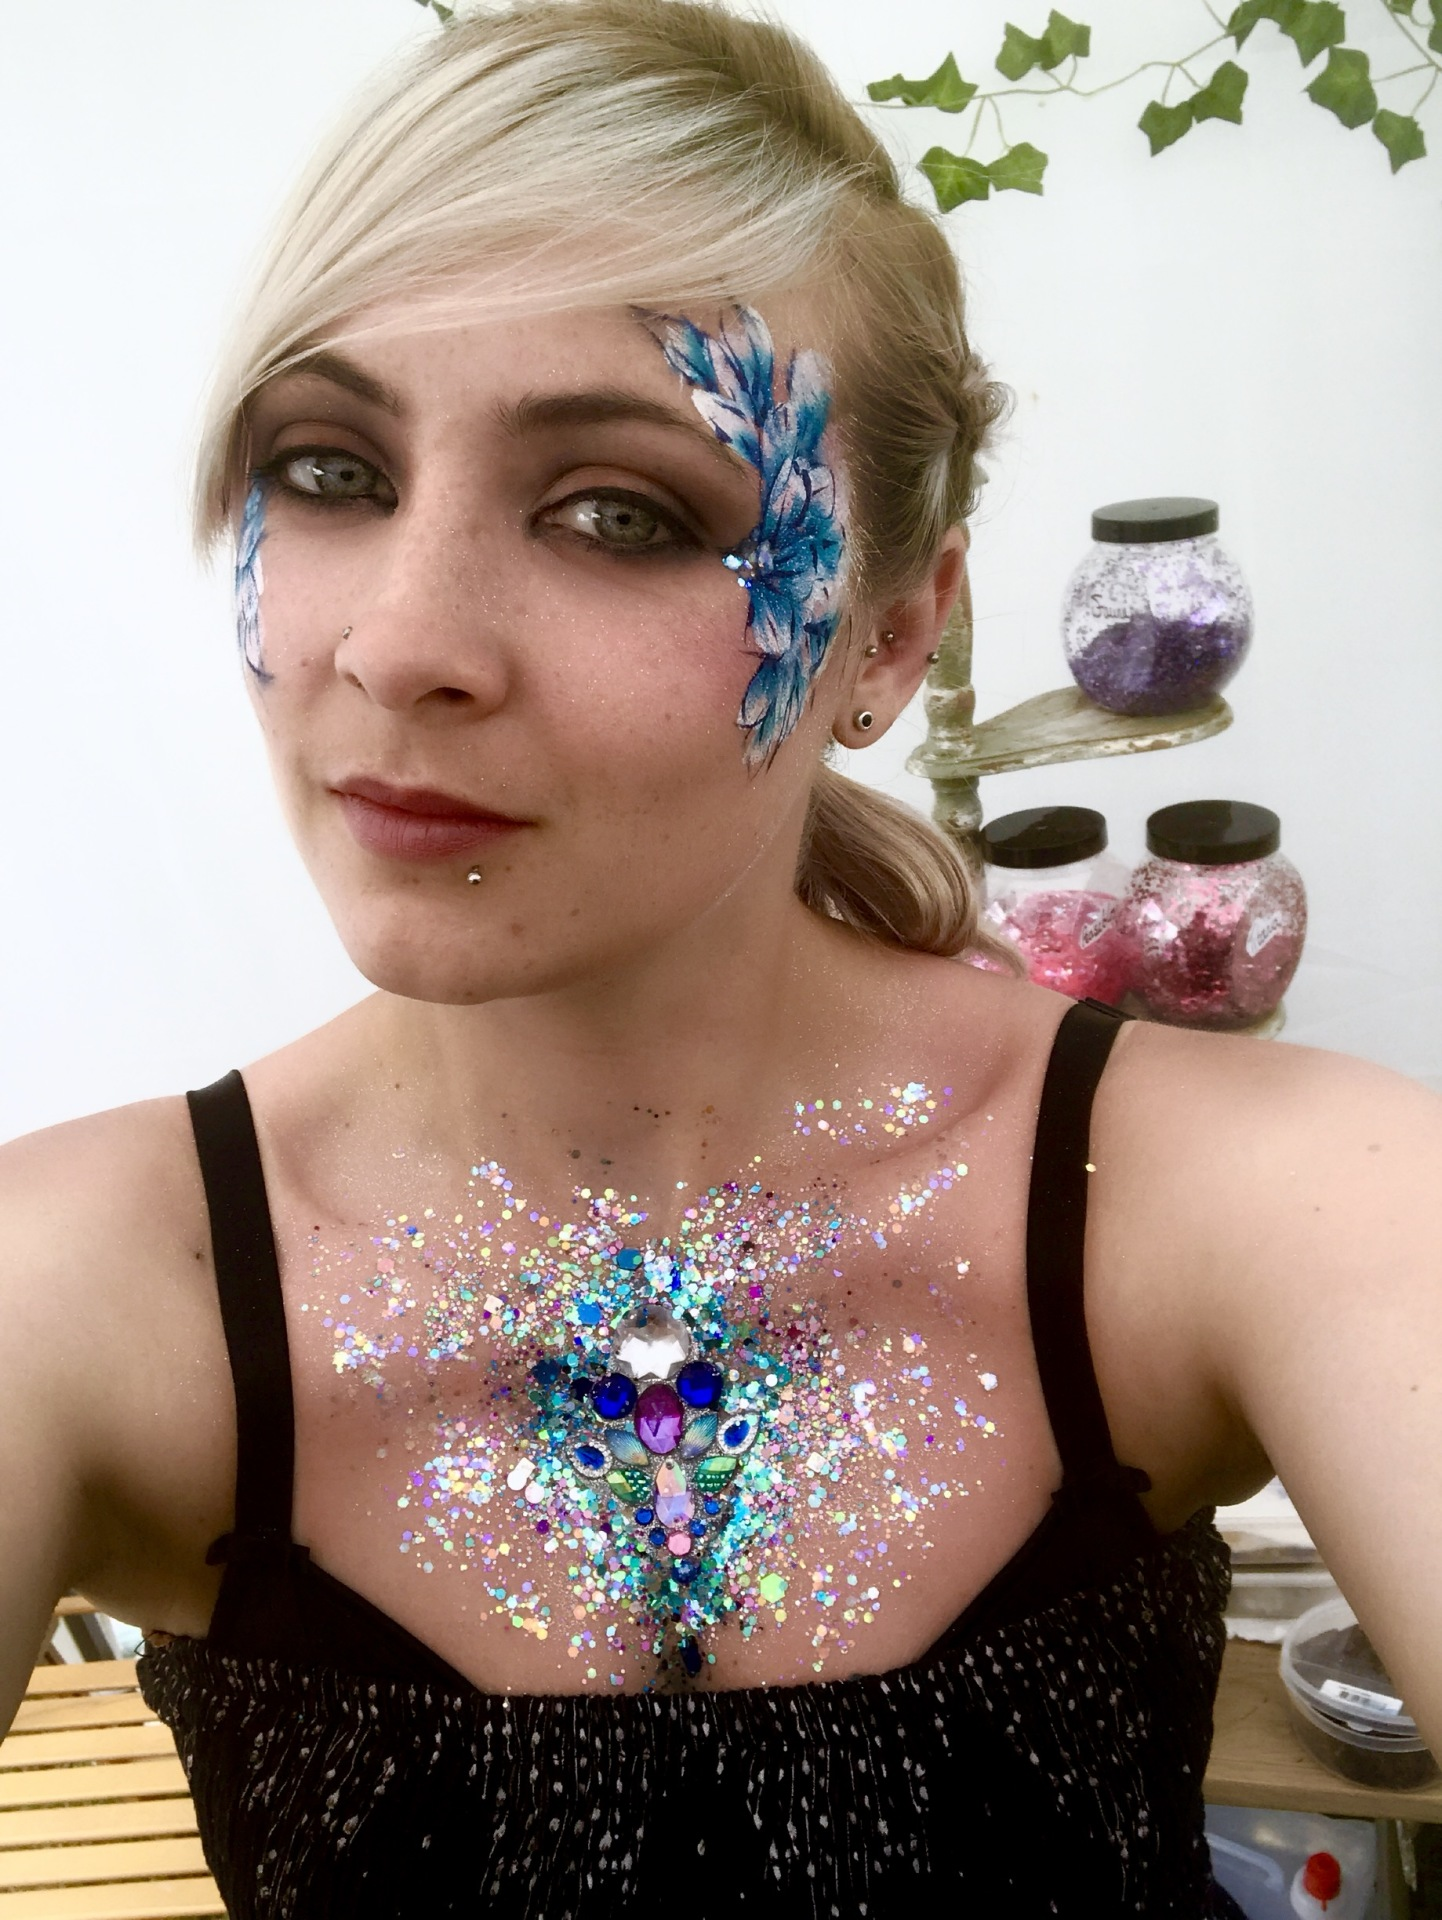 Glitter and Floral Face Paint